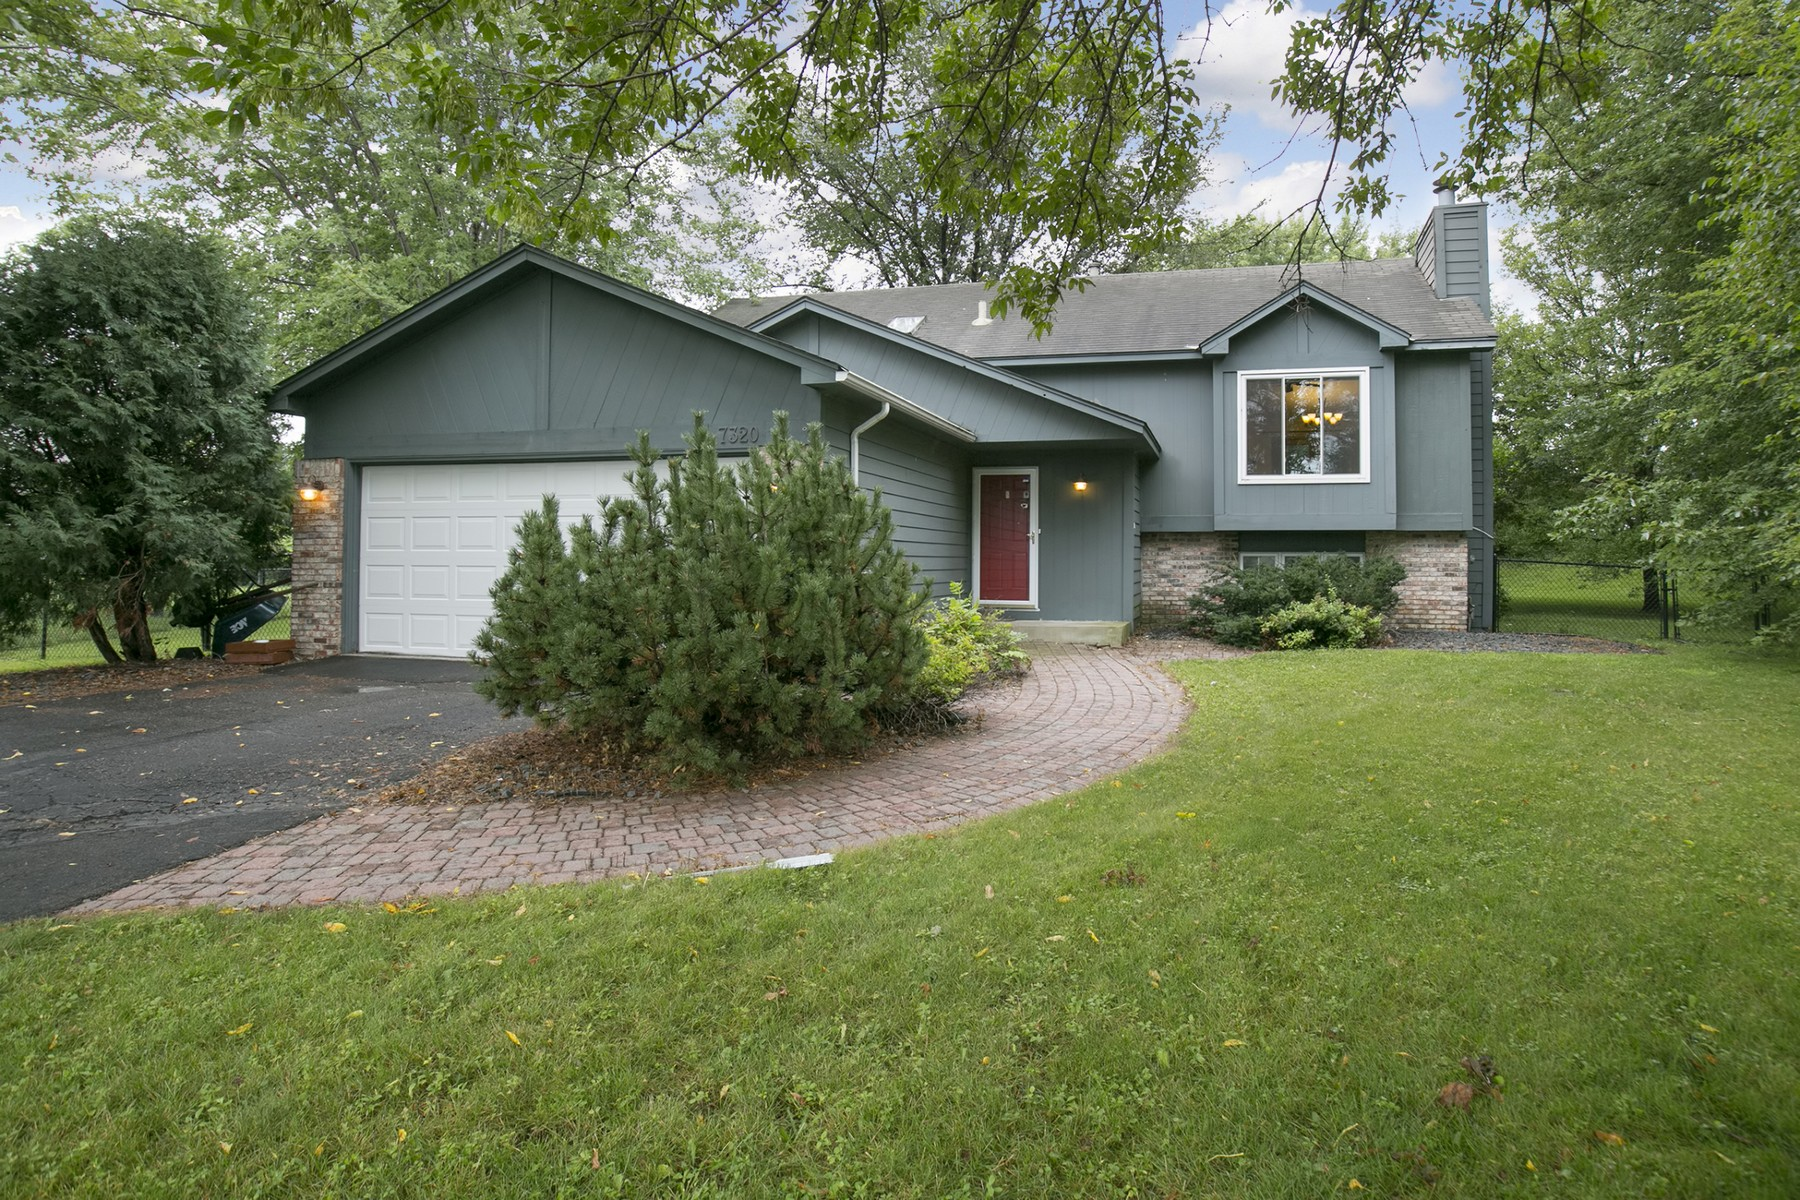 Single Family Home for Sale at 7320 Cactus Curve Chanhassen, Minnesota 55317 United States